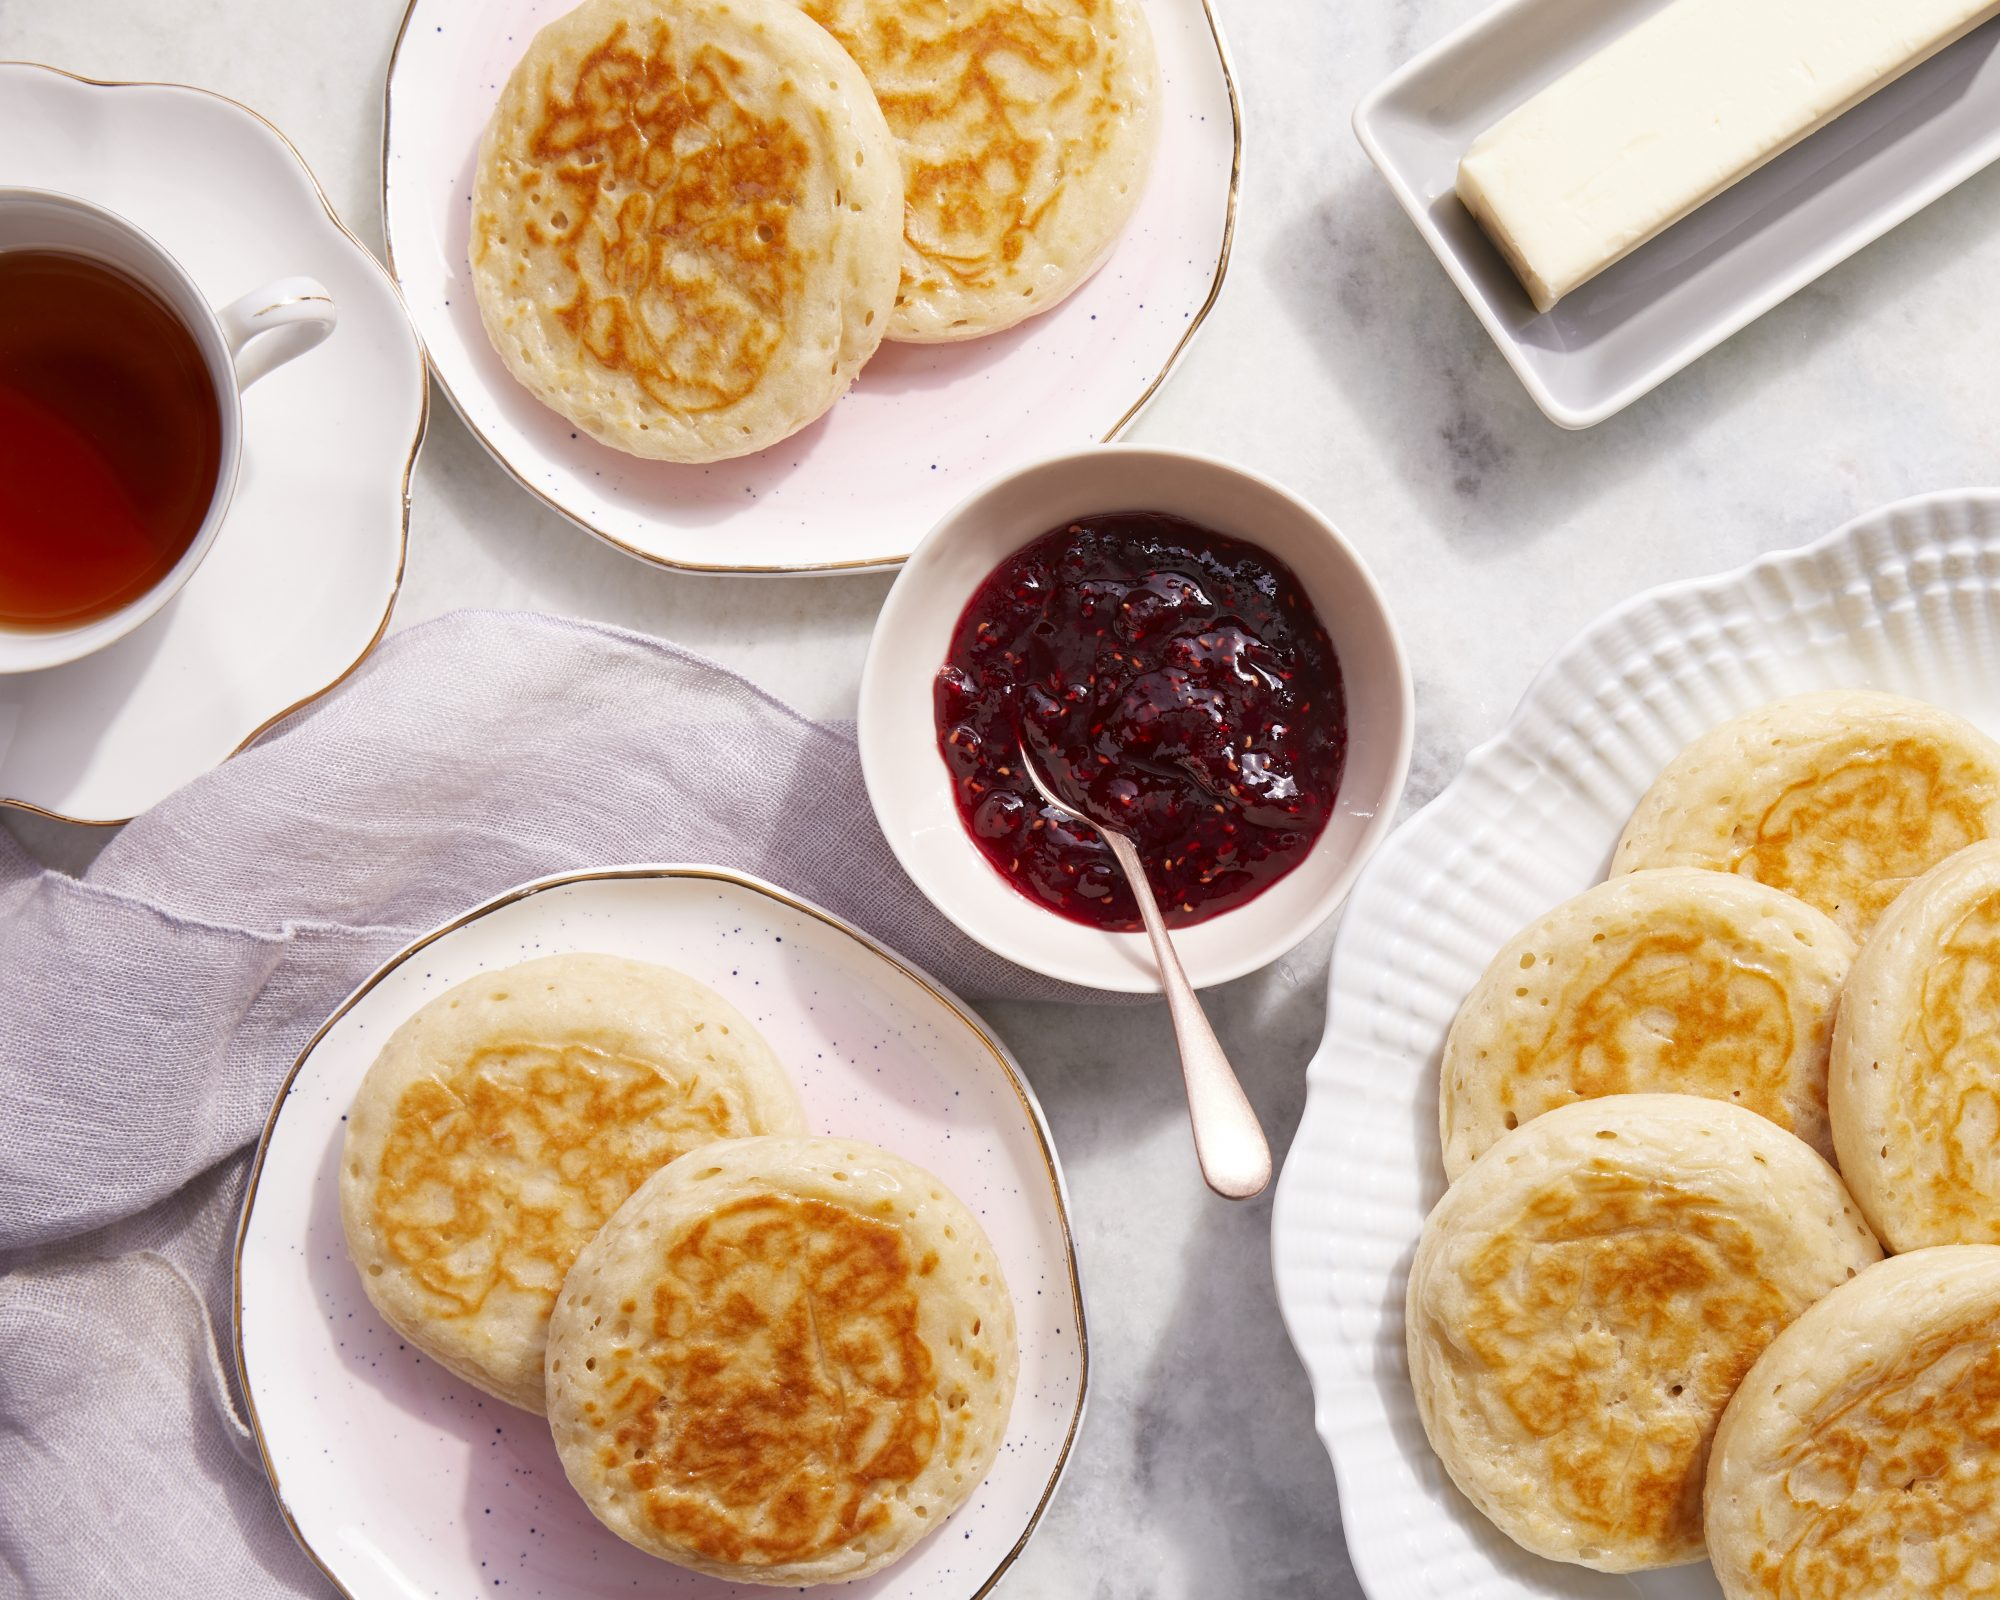 Crumpets image